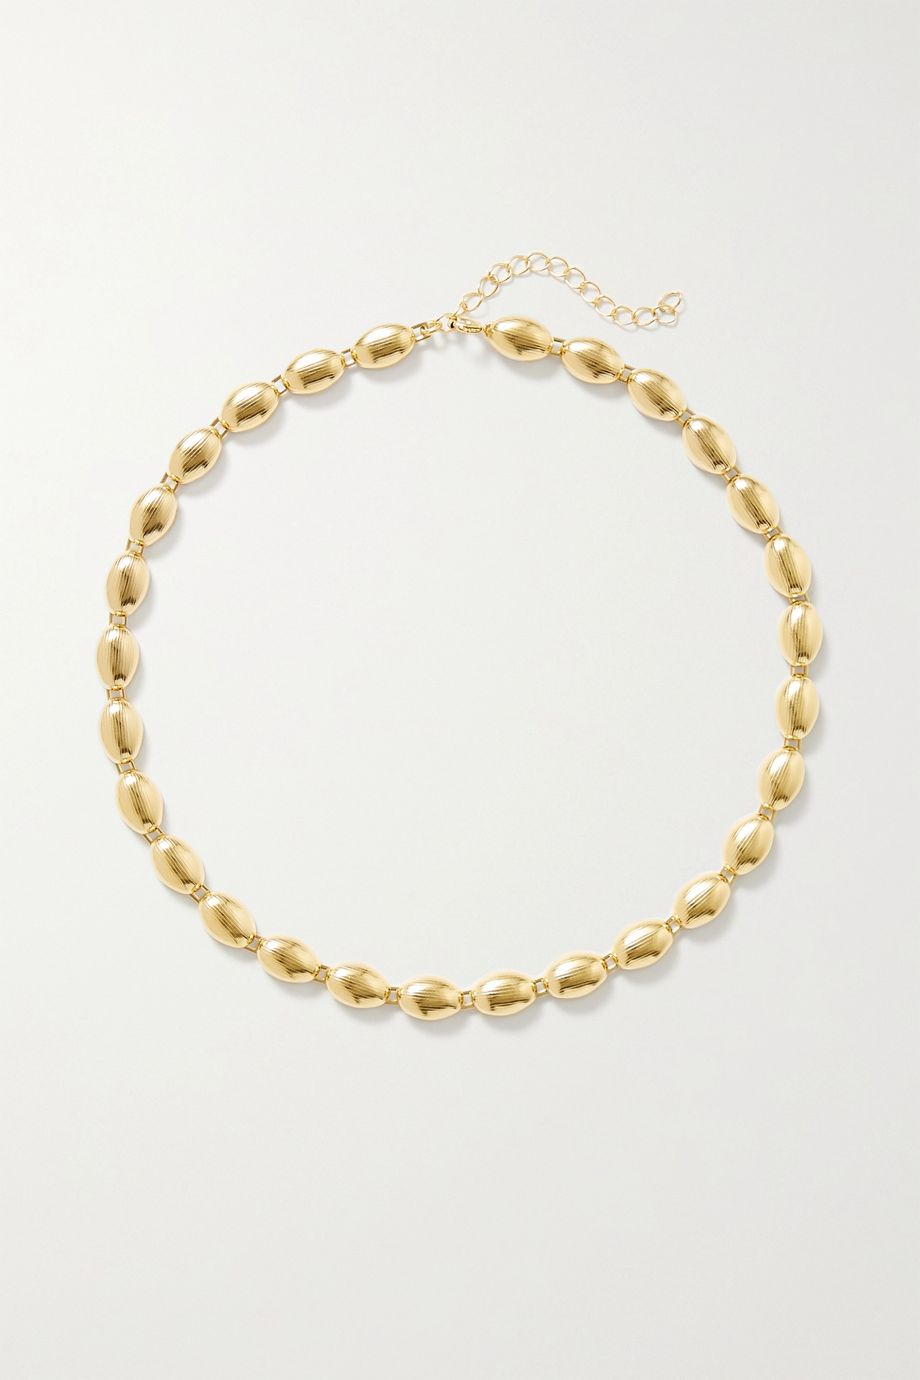 1064 Studio Deep in Grassland gold-plated necklace